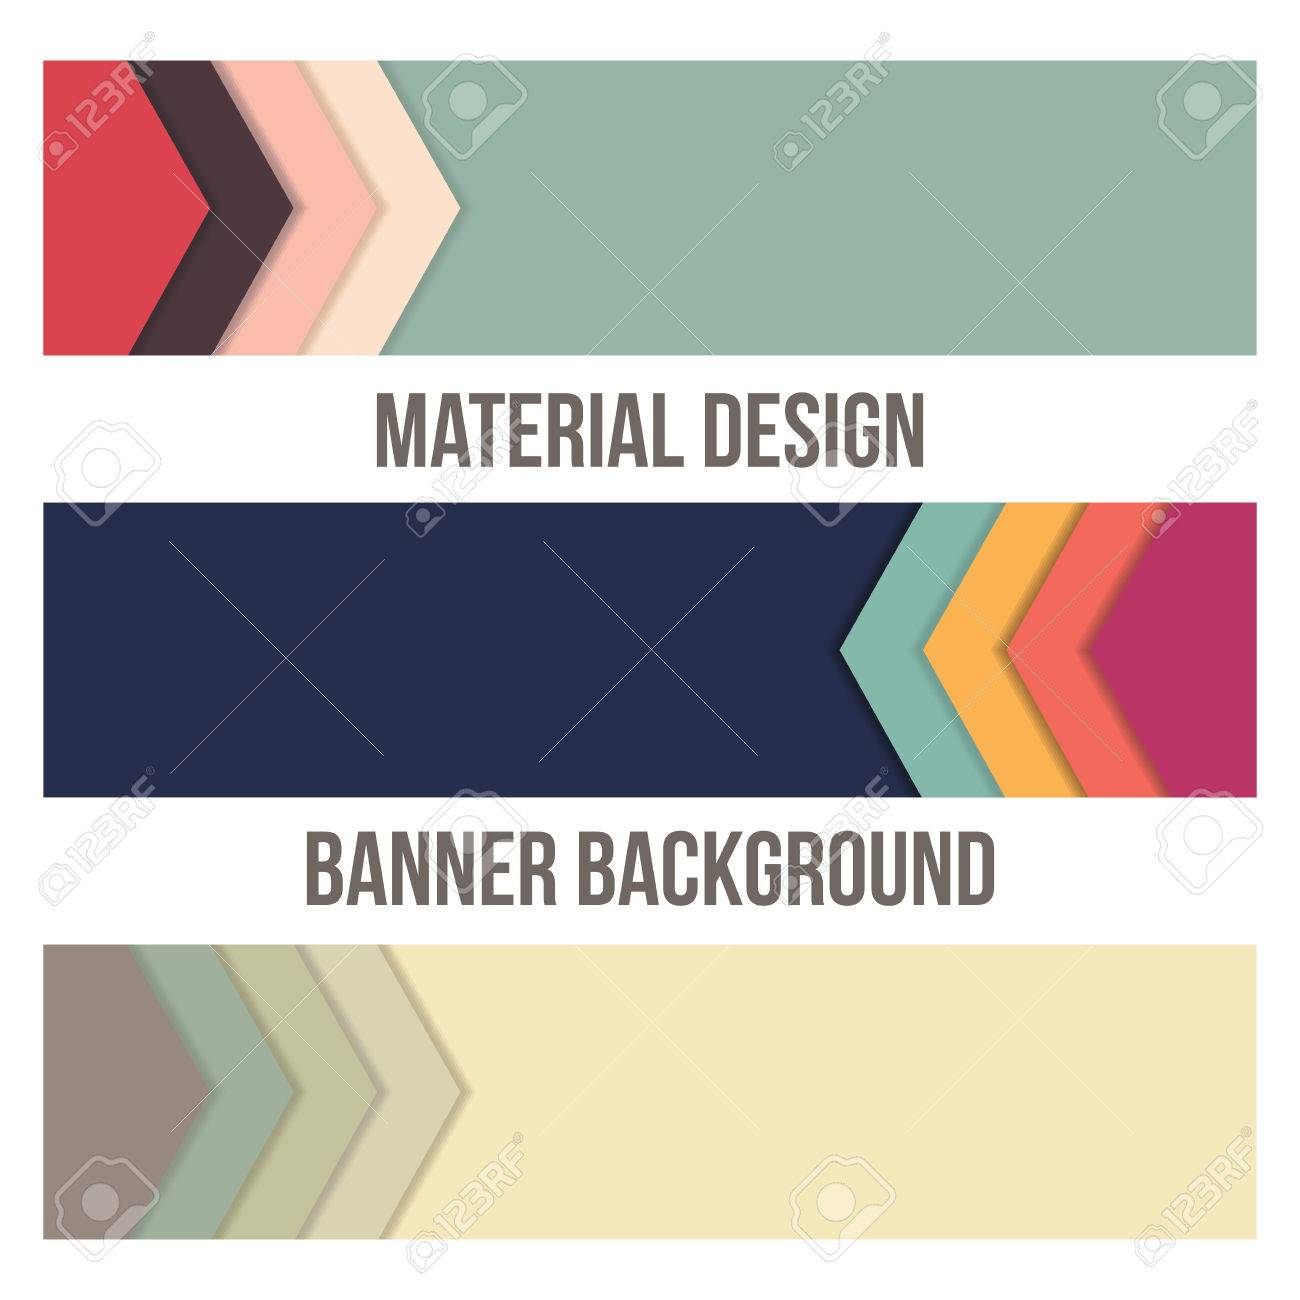 background unusual modern banner material design abstract